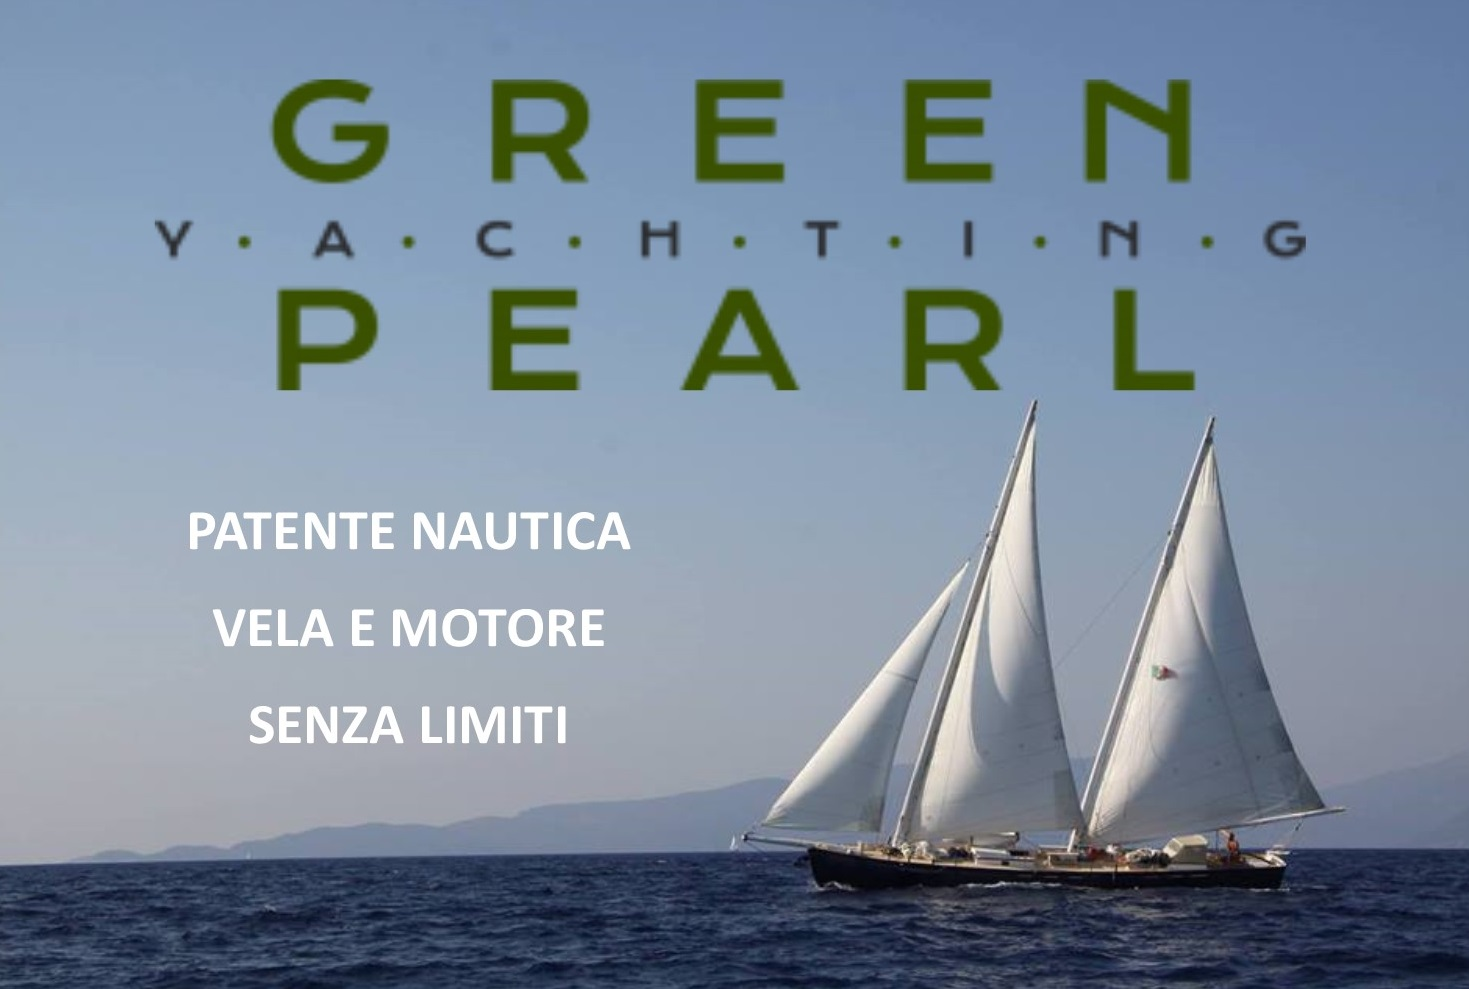 Green Pearl Yachting – Patente nautica